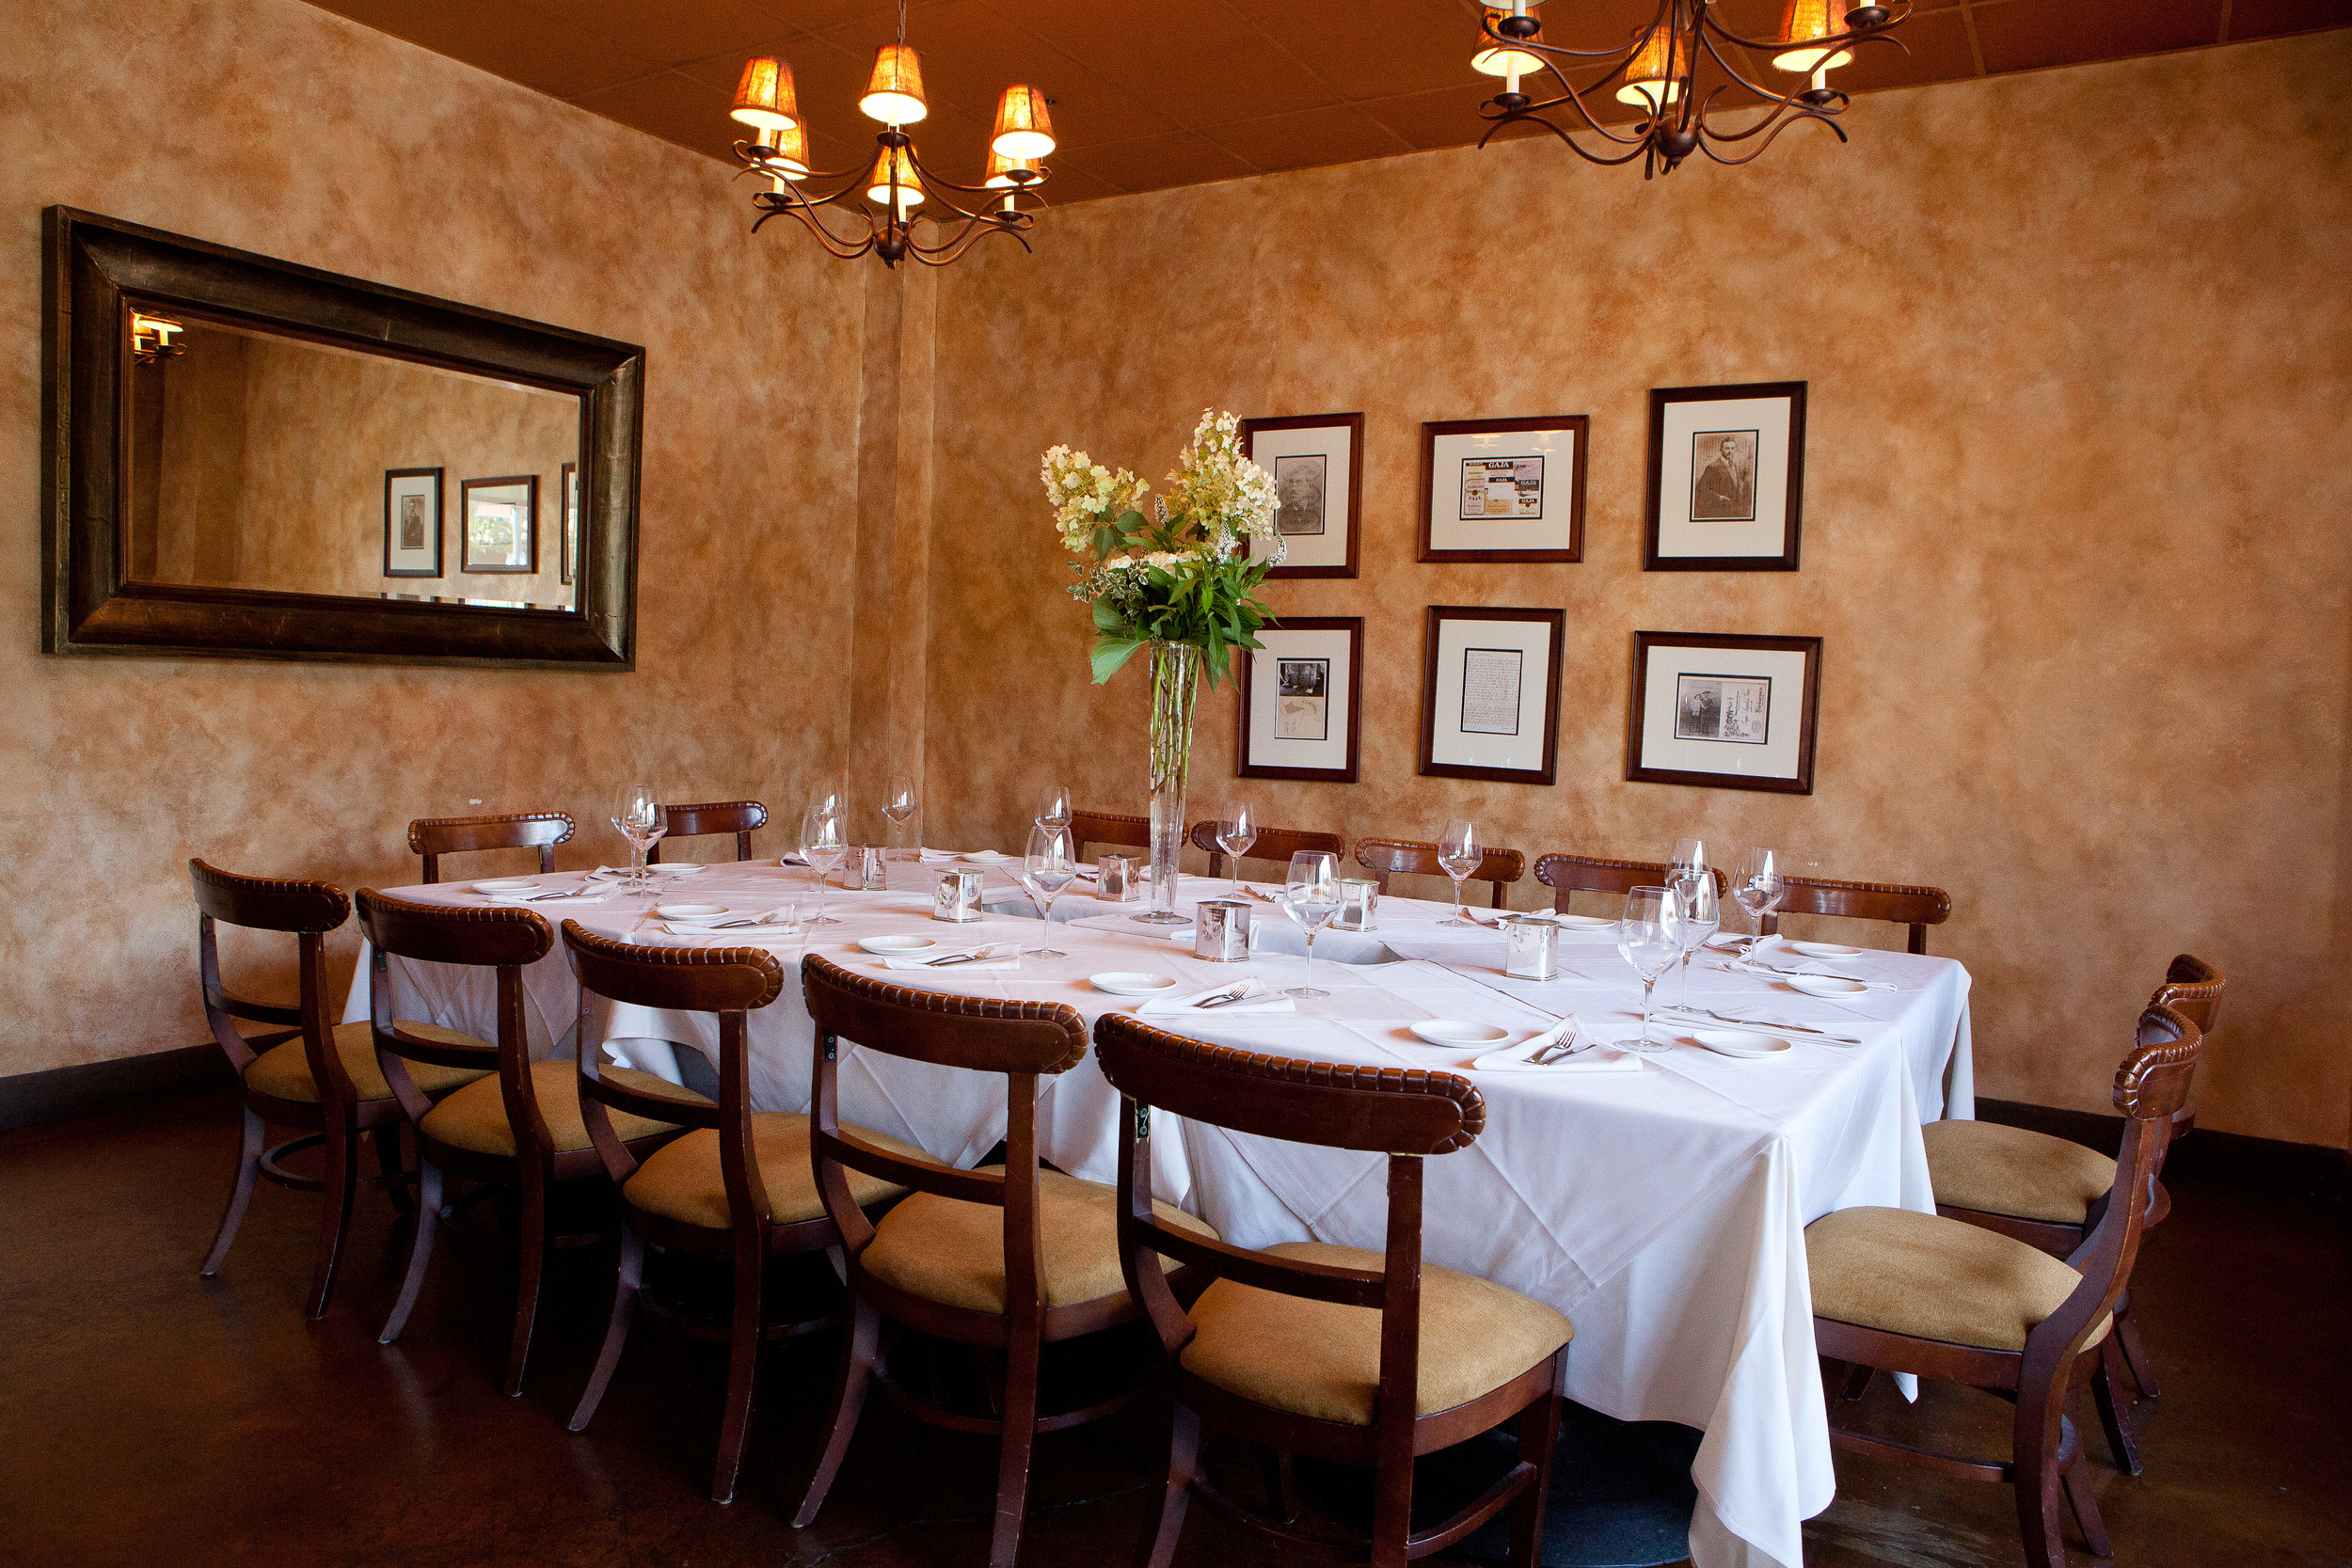 Gaja Room  - Seats up to 14